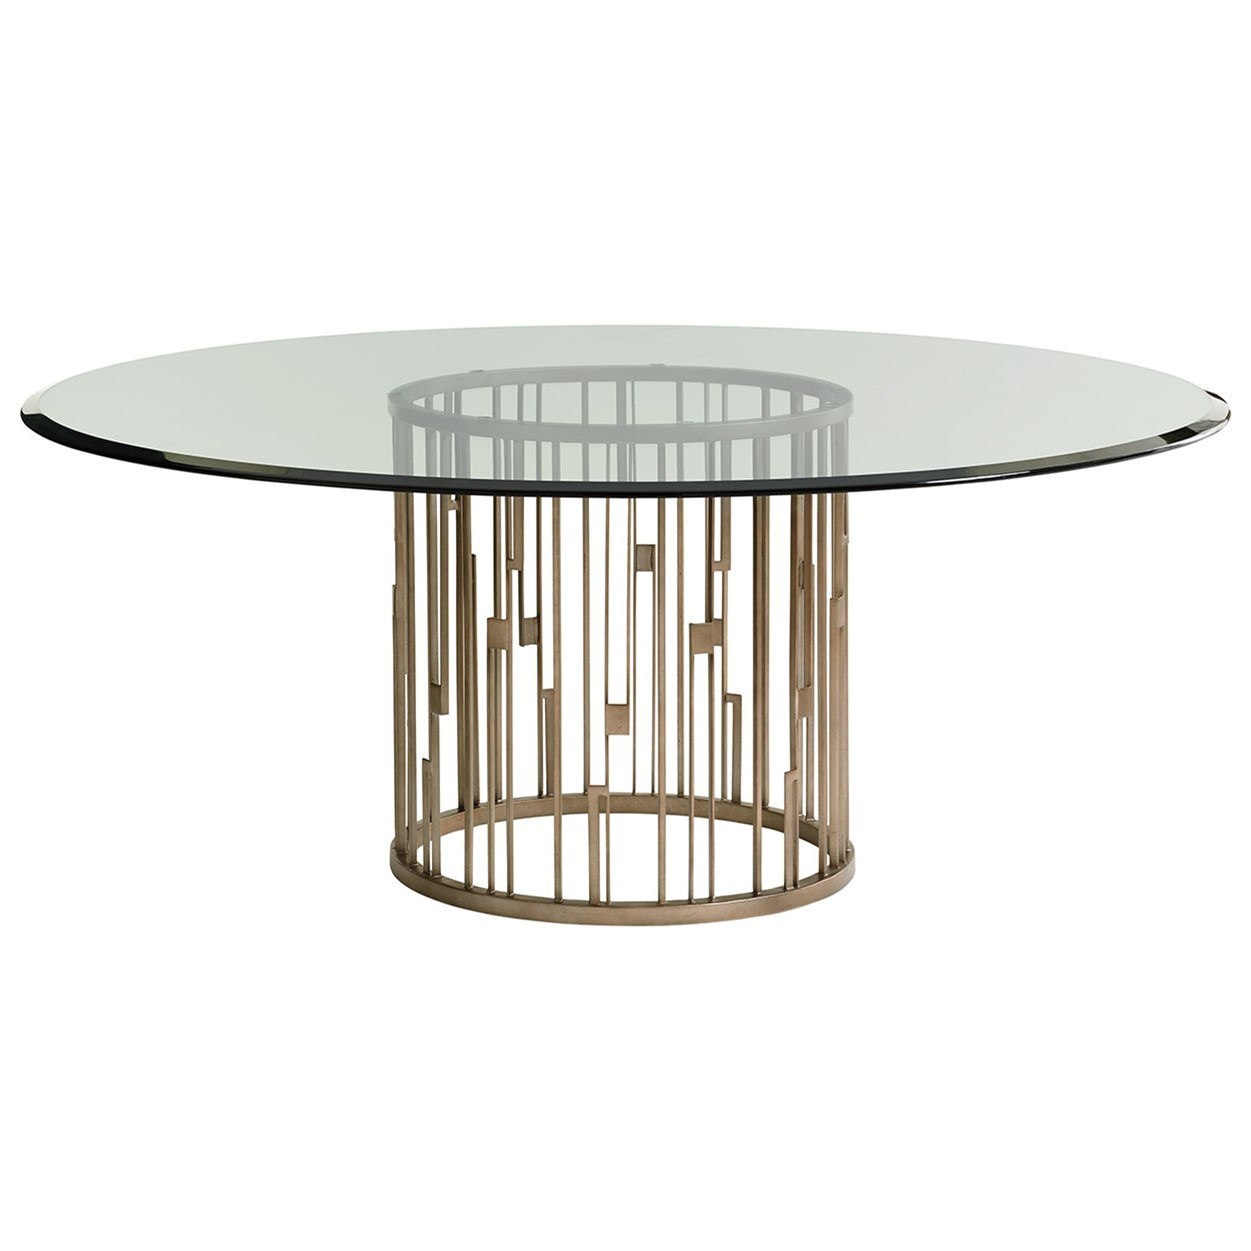 Shadow Play Rendezvous Dining Table with Glass Top by Lexington at Johnny Janosik